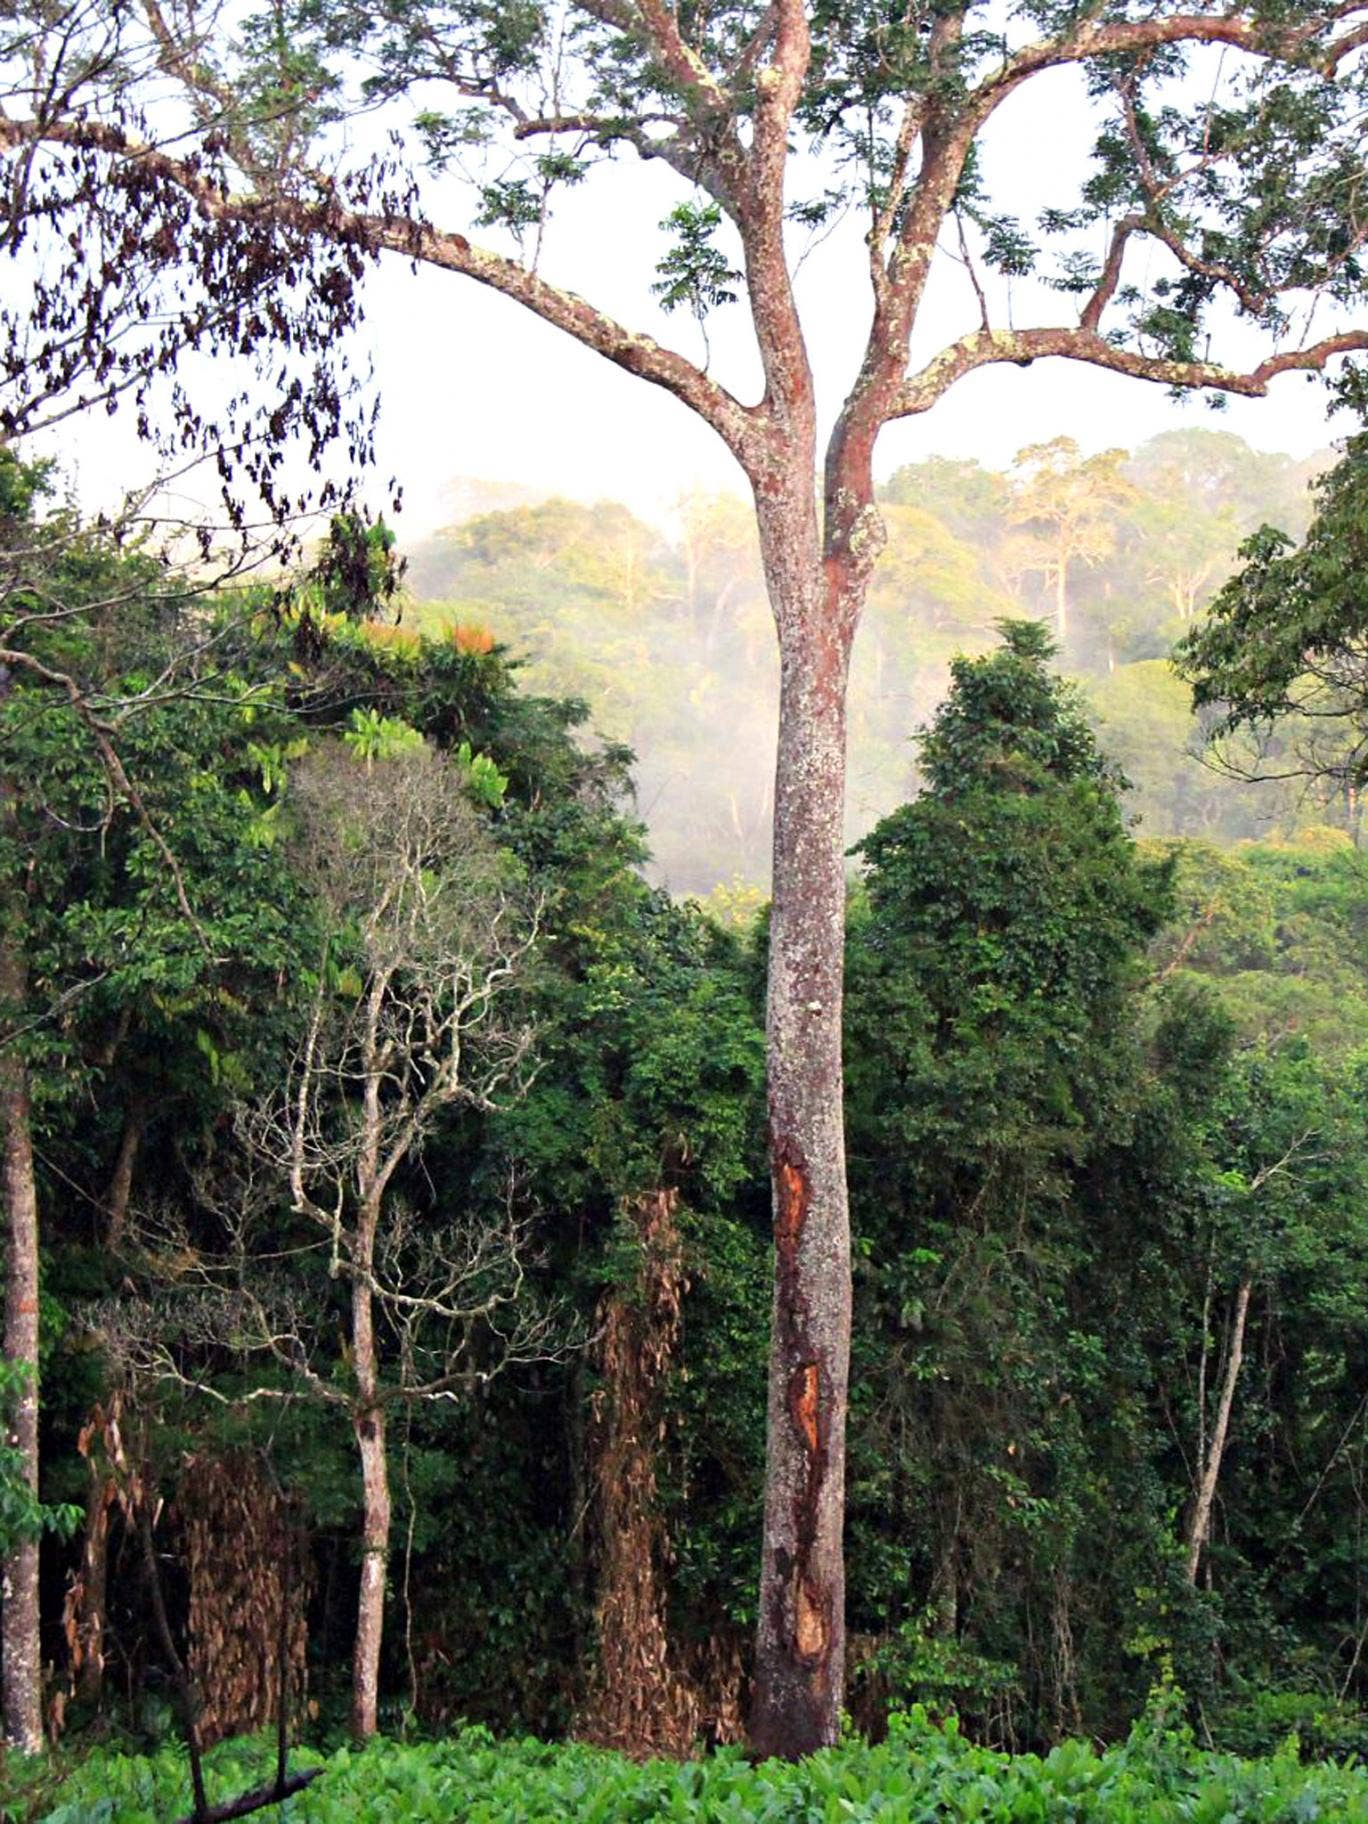 Monkeying around: rainforest in the Congo